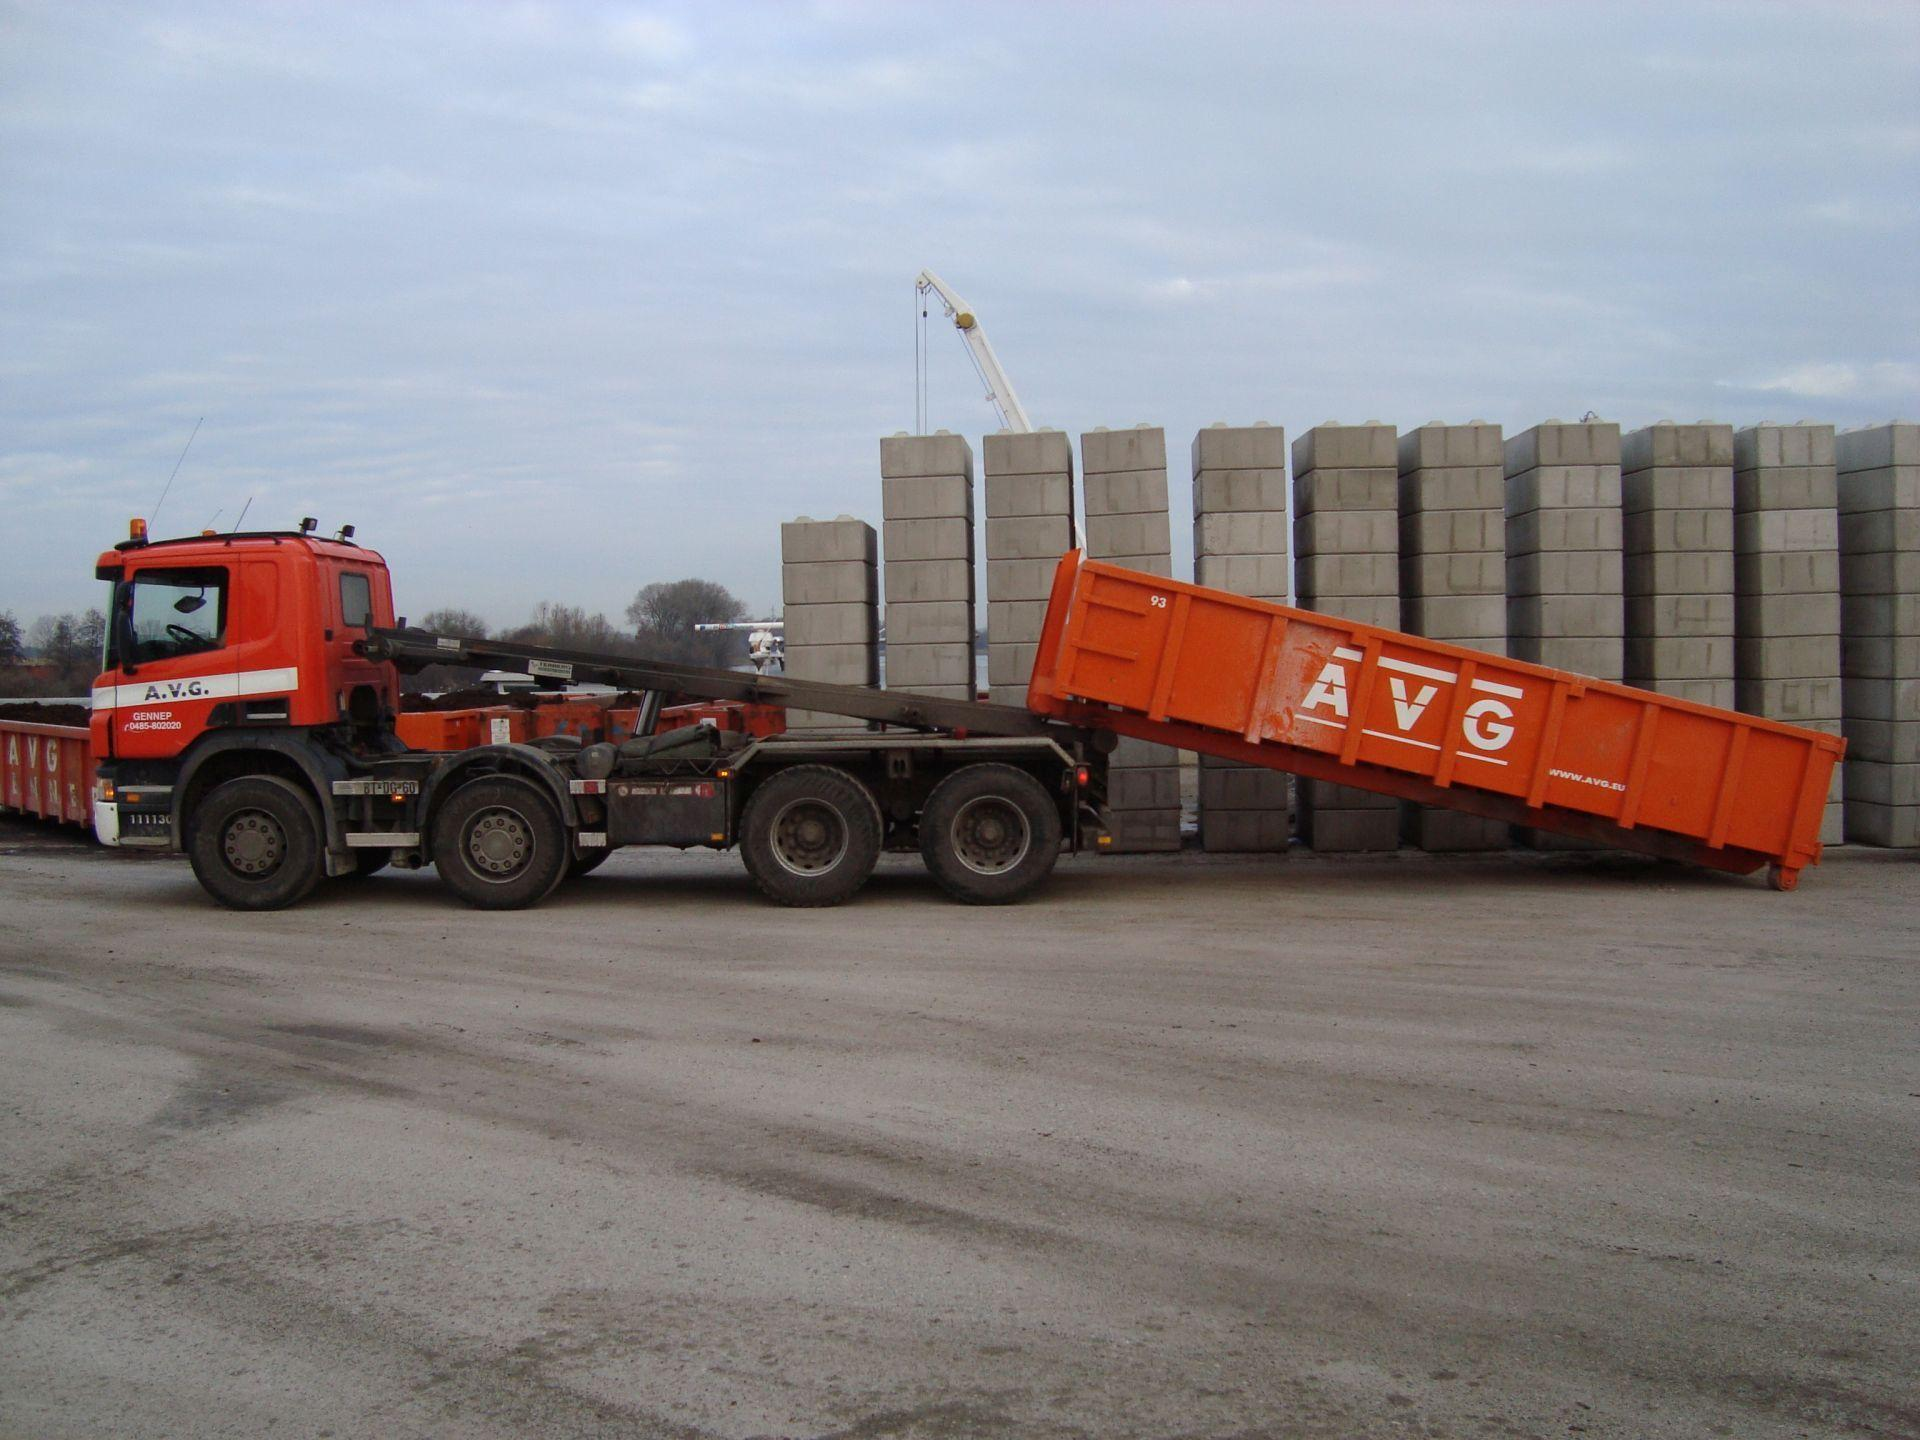 lange-container-8-avg-bouwstoffen